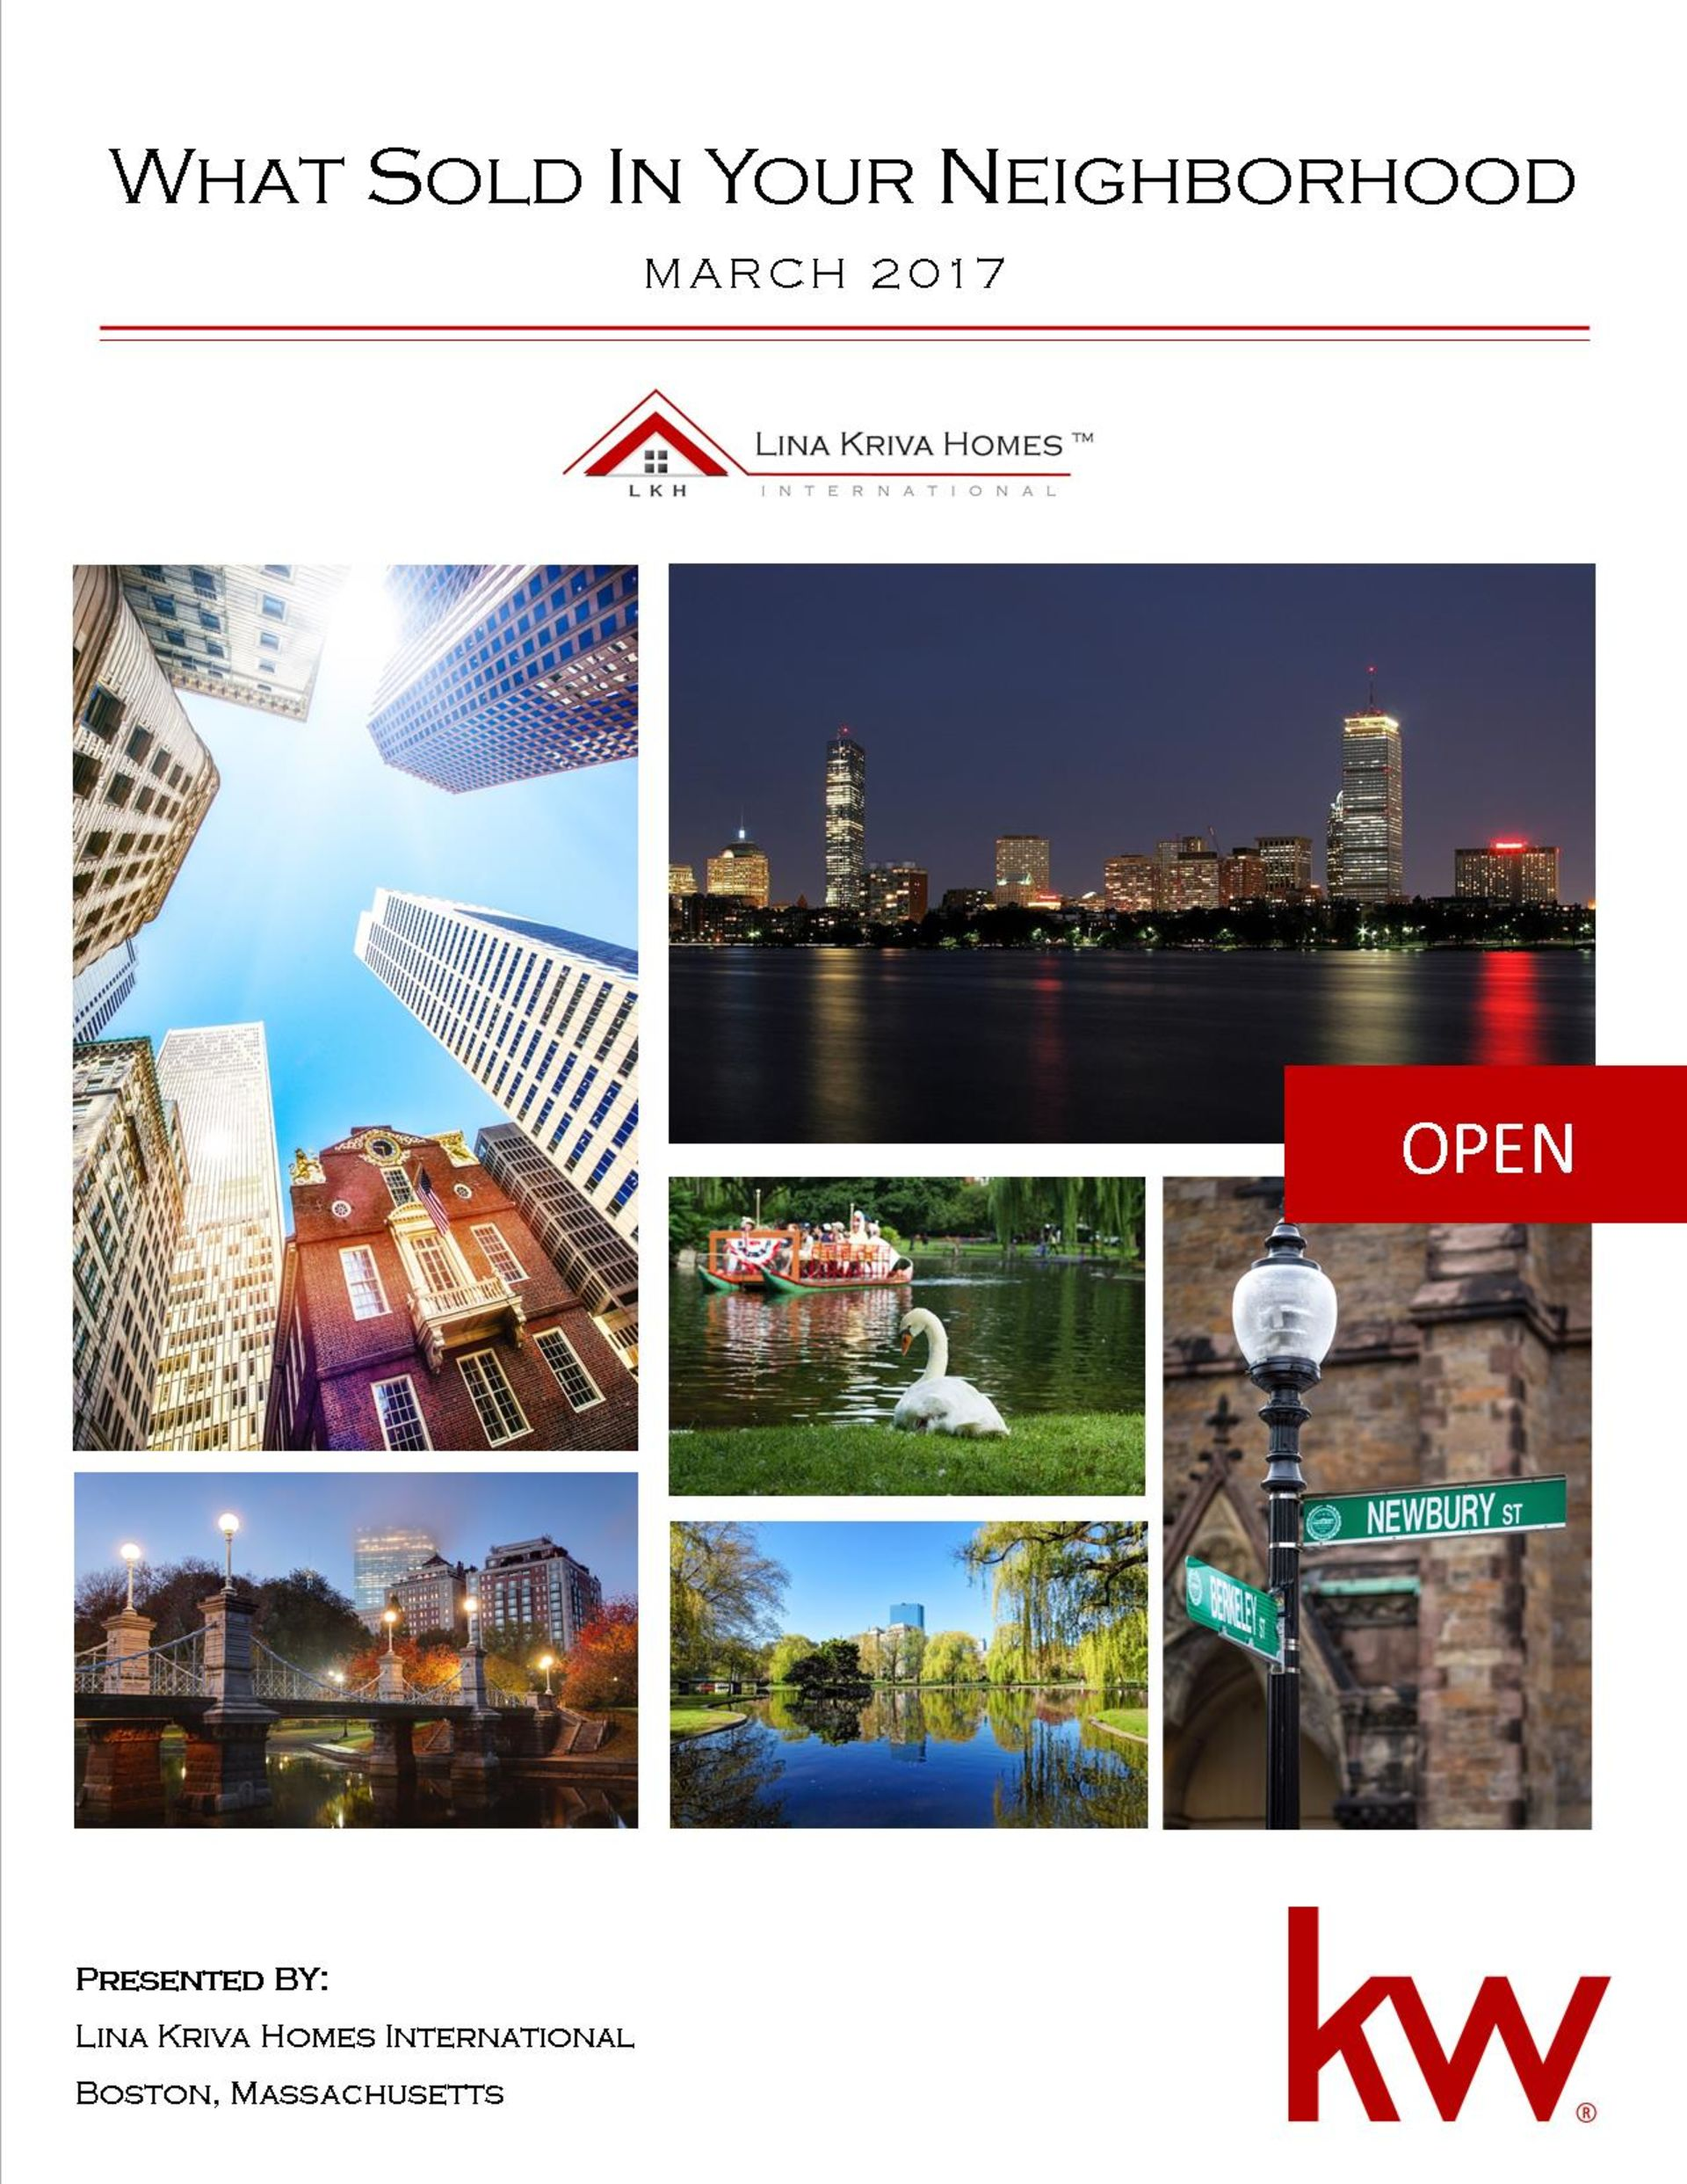 March 2017 – What Sold in Your Neighborhood?